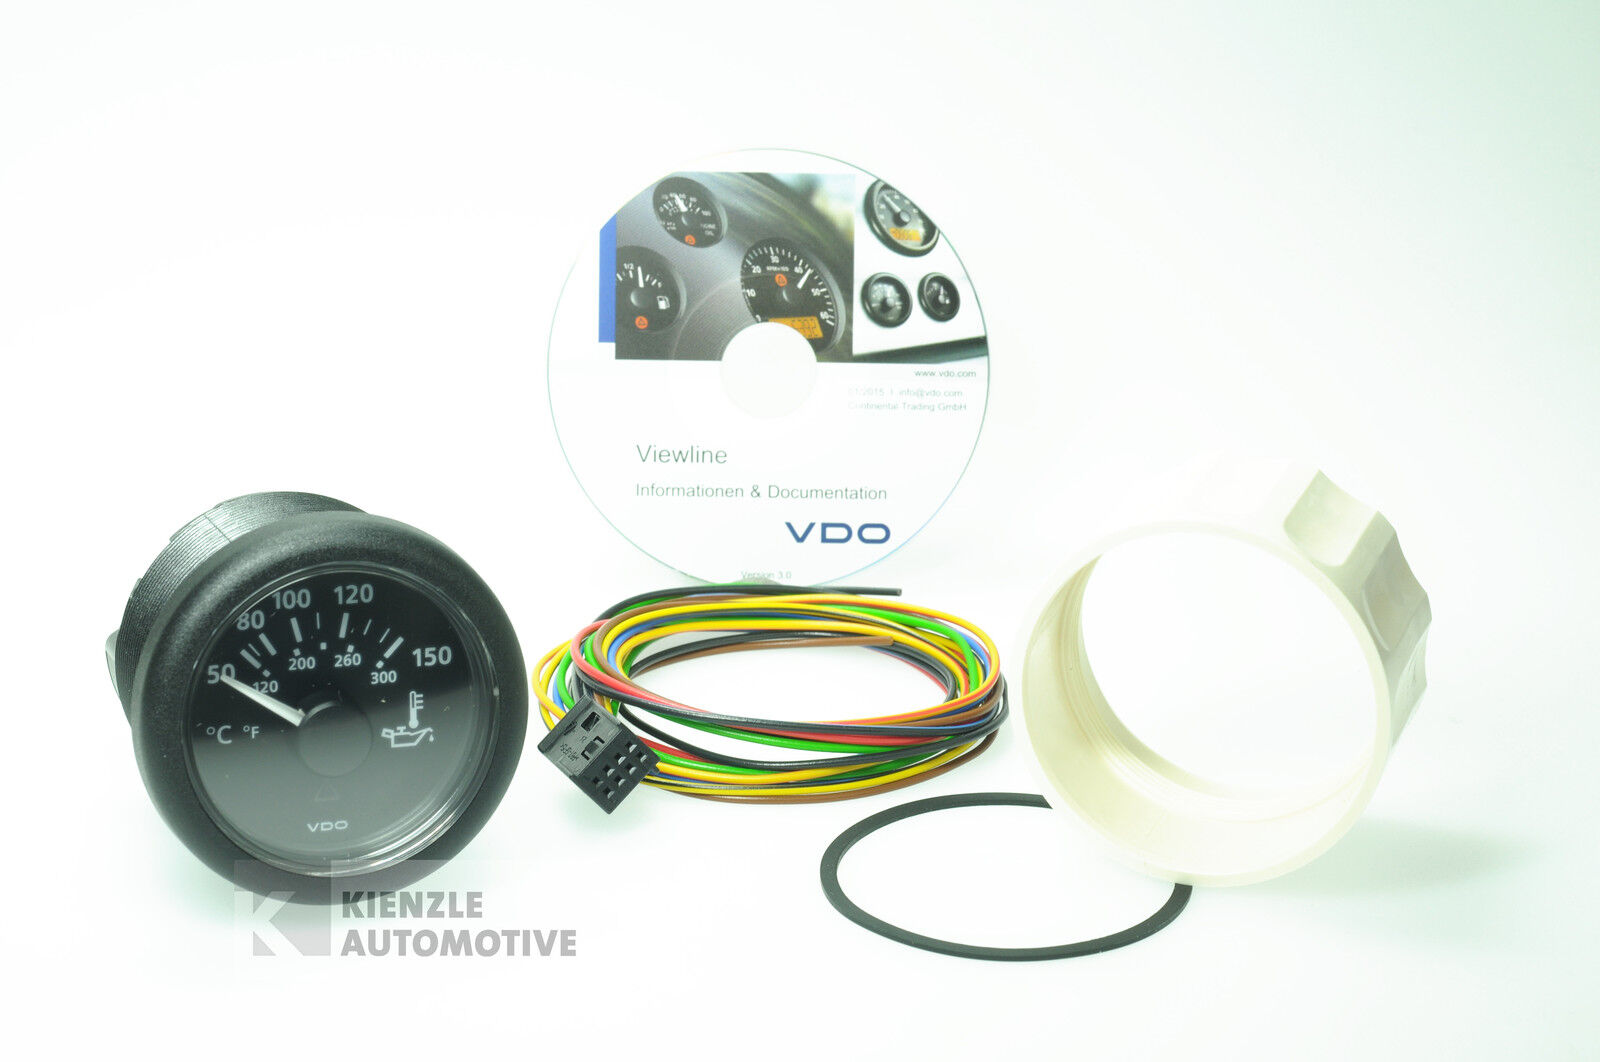 VDO Viewline Indicatore Temperatura Acqua Frossoda 120°, 1224 Volt, Ø 52 MM